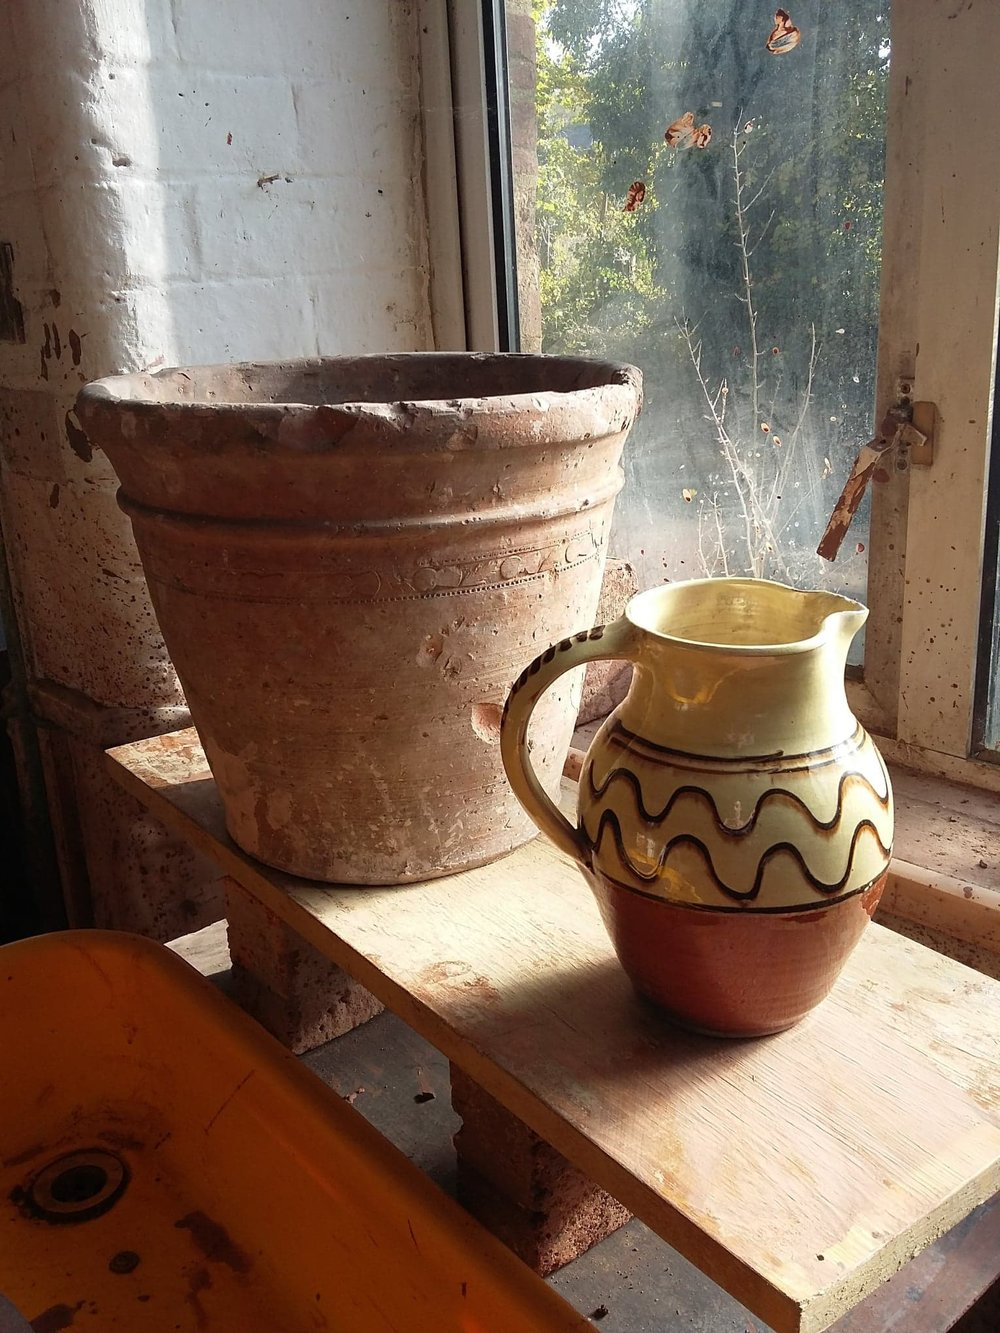 One of Elijah Comfort's flower pots, and a lovely jug made by Ray Finch. Image courtesy of Matt Grimmitt.